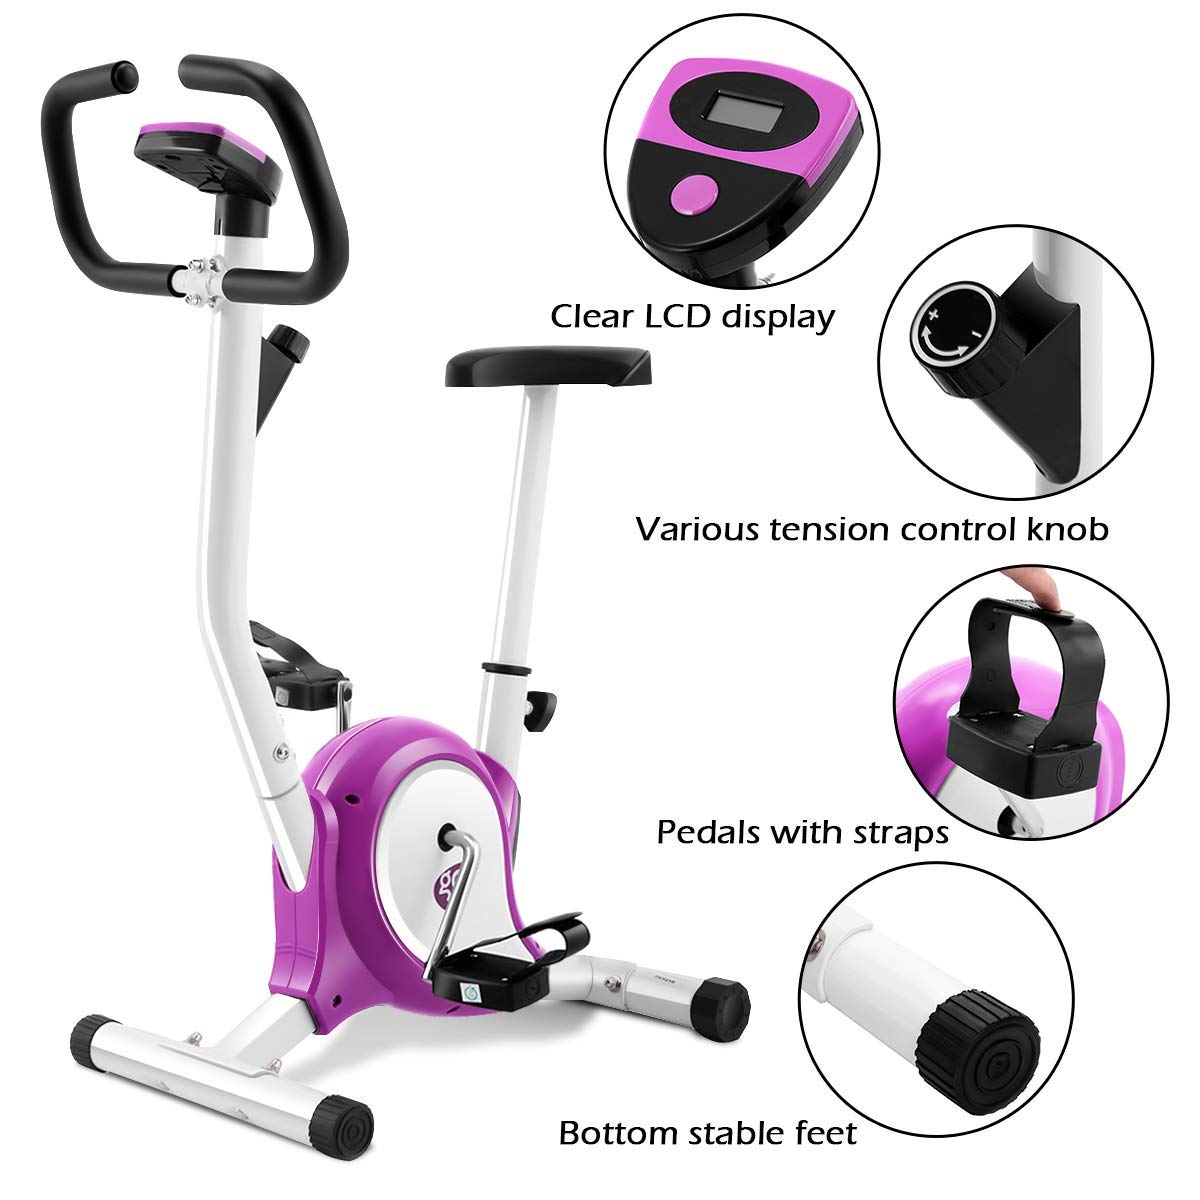 Goplus Upright Exercise Bike Magnetic Stationary Cycling Fitness Cardio Aerobic Equipment (White + Purple)